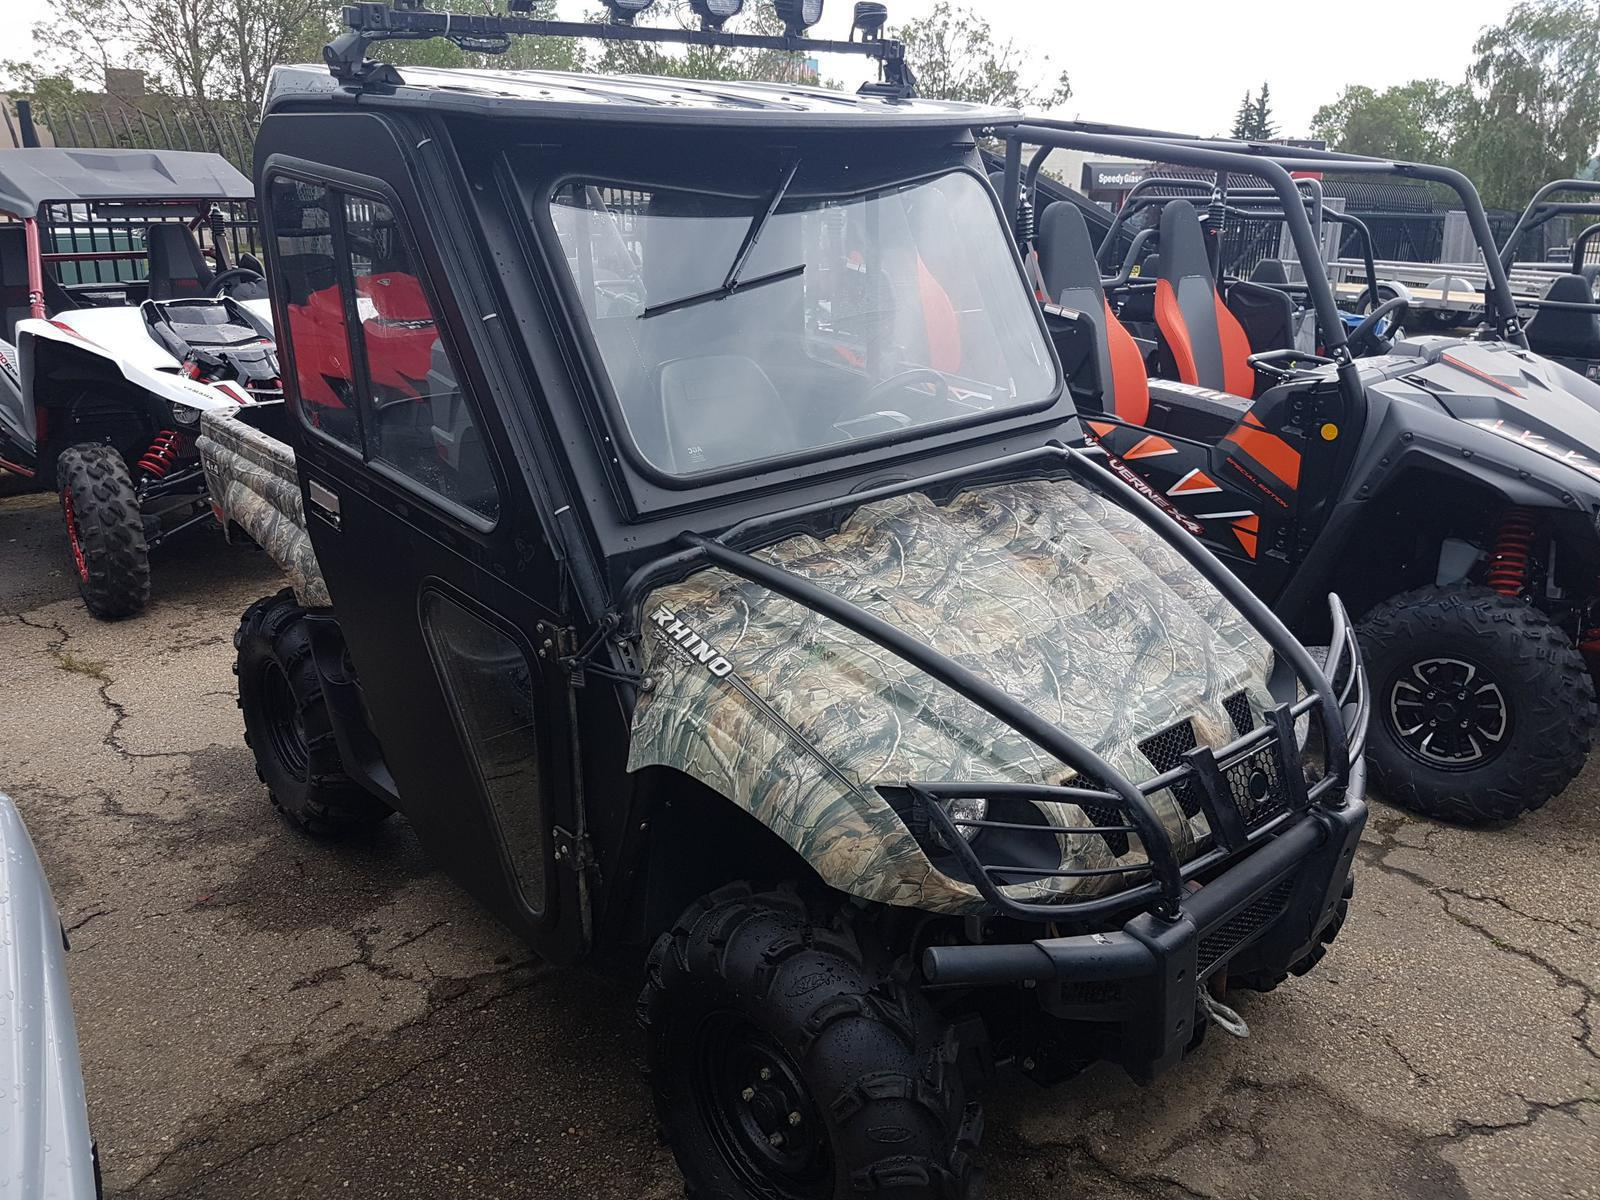 2009 Yamaha Rhino 700 Fi Auto 4x For Sale In St Albert Ab Fuel Filter Location